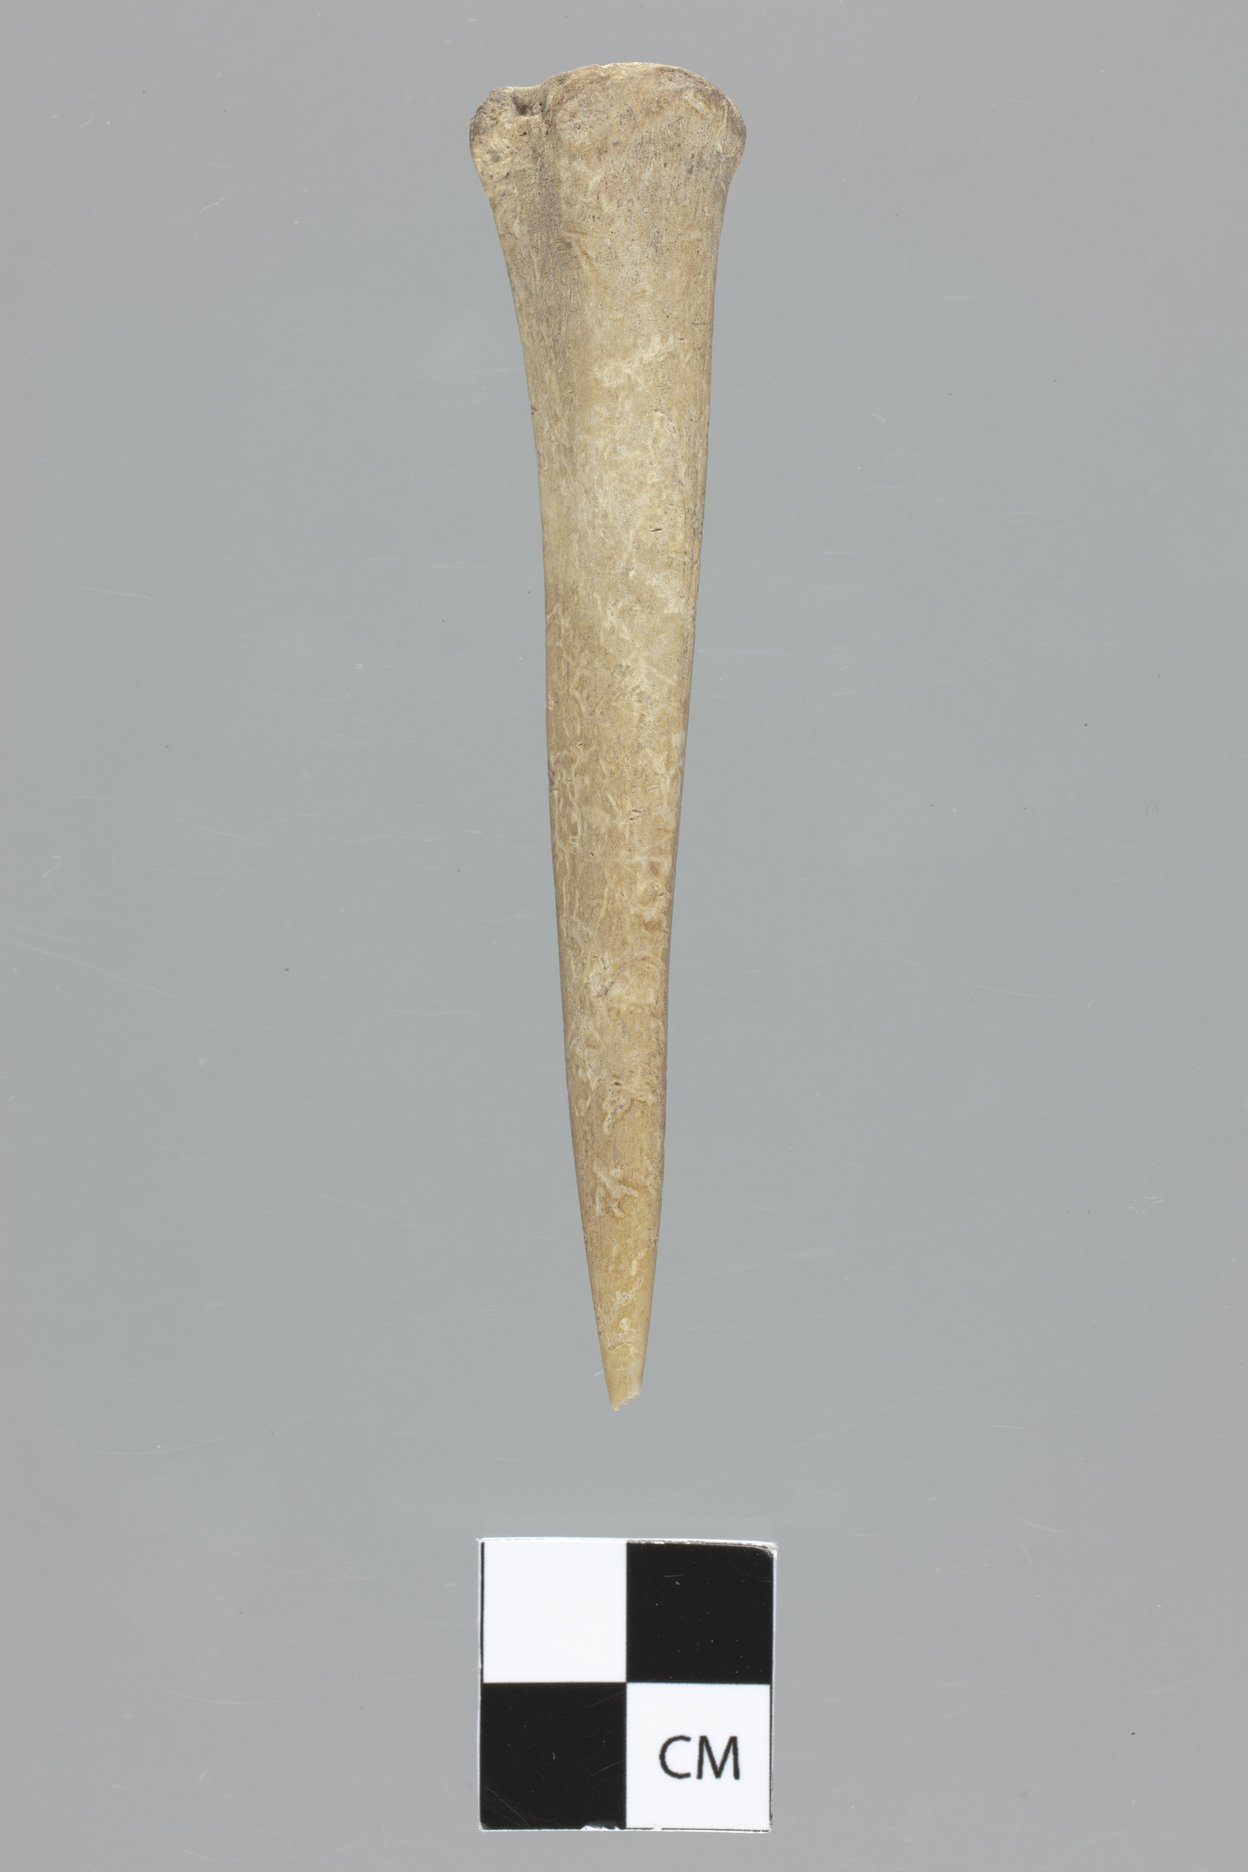 Bone Awl from the Lundeen Site, 14MD306 - 3